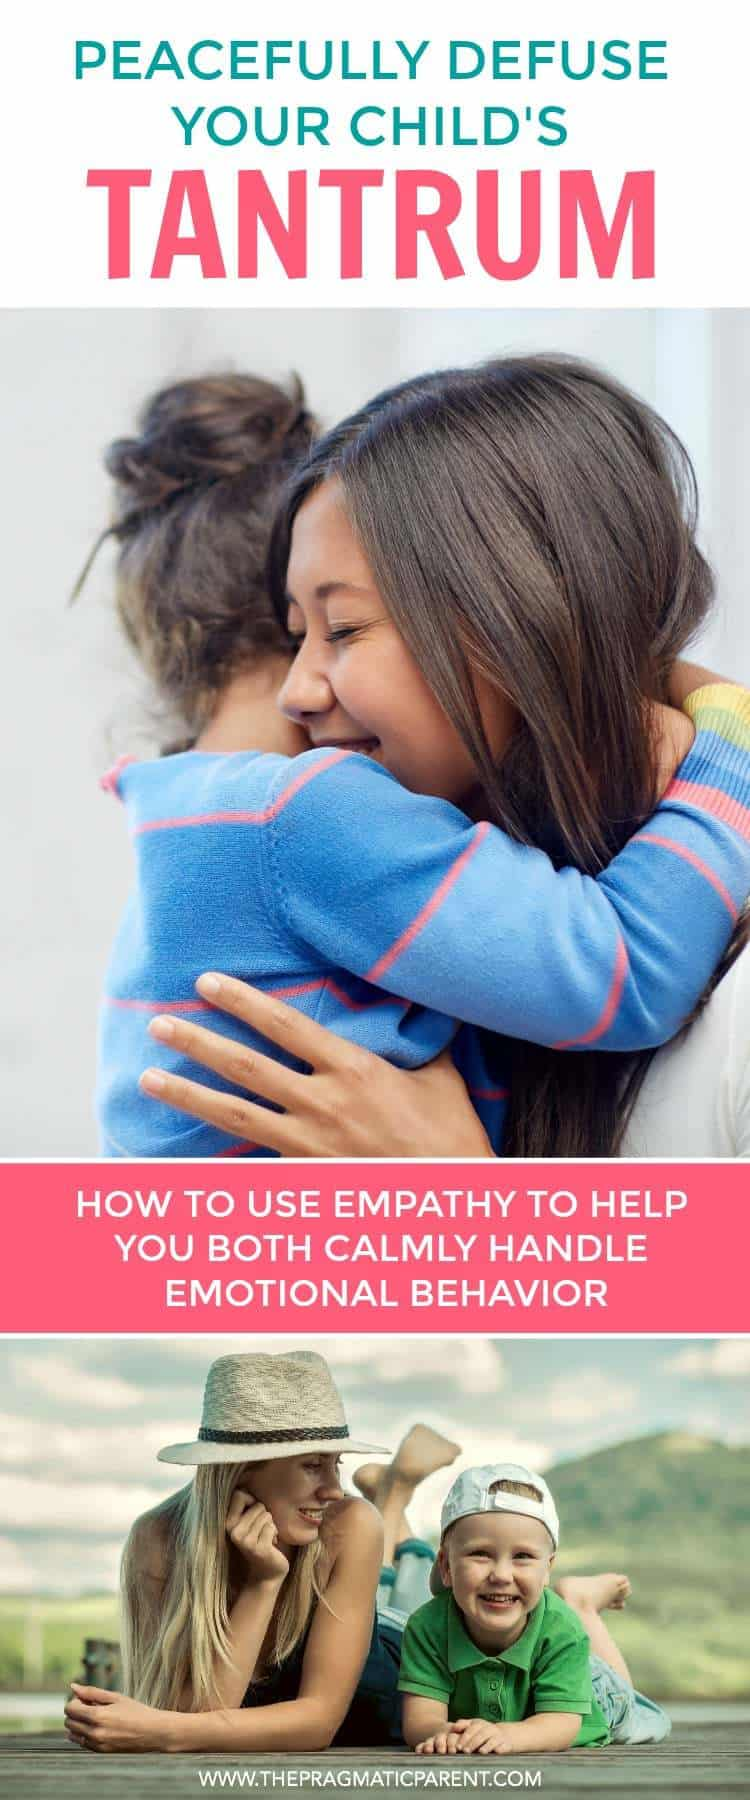 How to peacefully defuse and calm tantrums using empathy and teaching about emotions in the process. Stop tantrums by helping your child learn about emotions, name feelings, give back power and calmly handle emotional behavior.